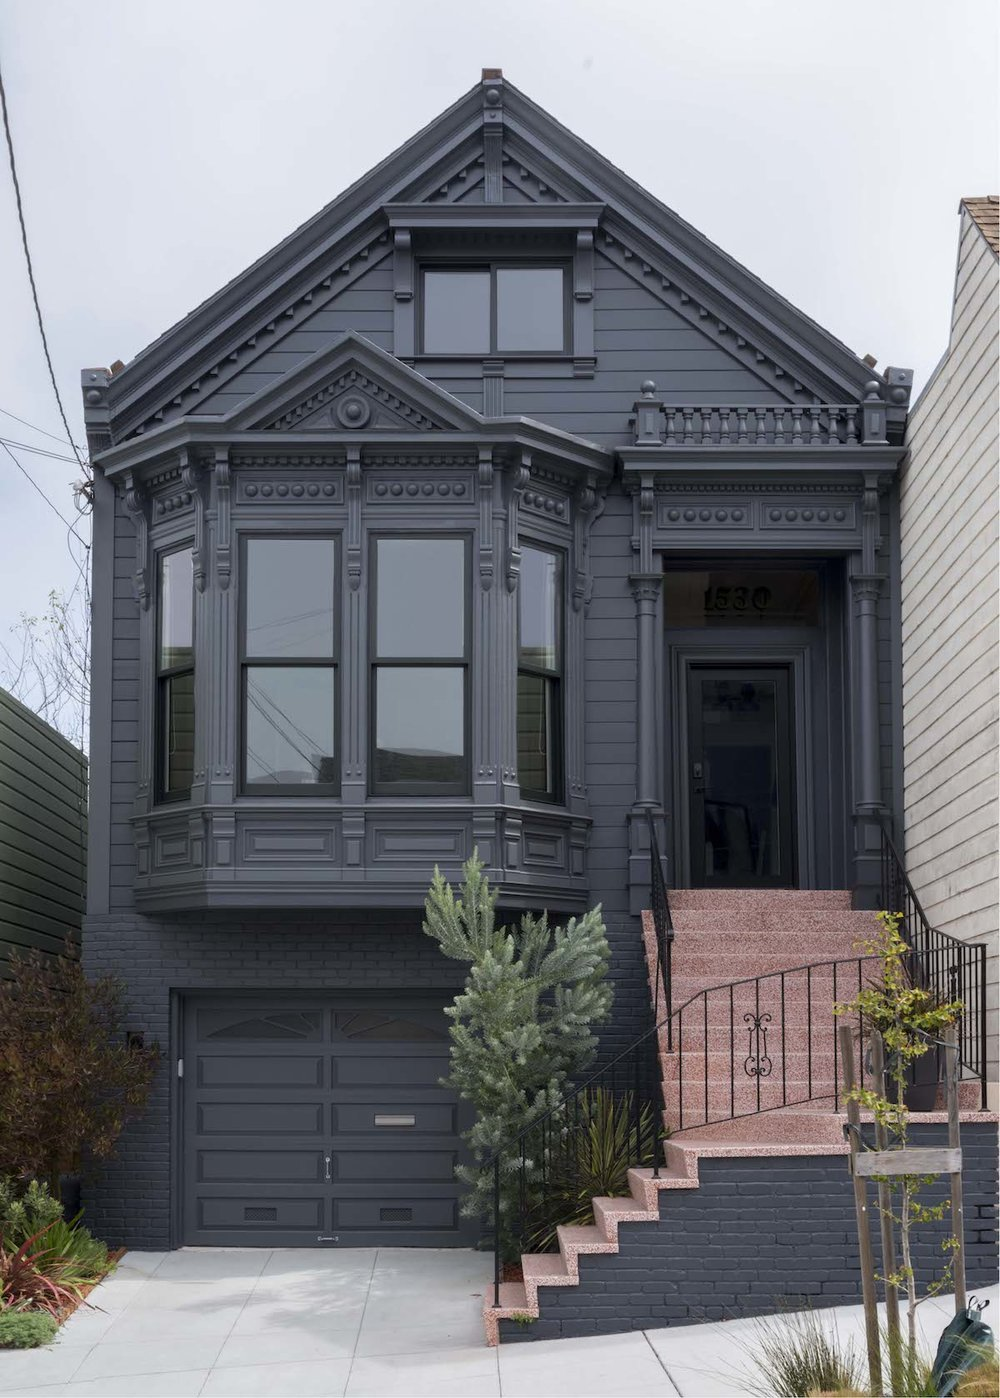 black exterior with black trim windows and door and red staircase with black railing.jpg